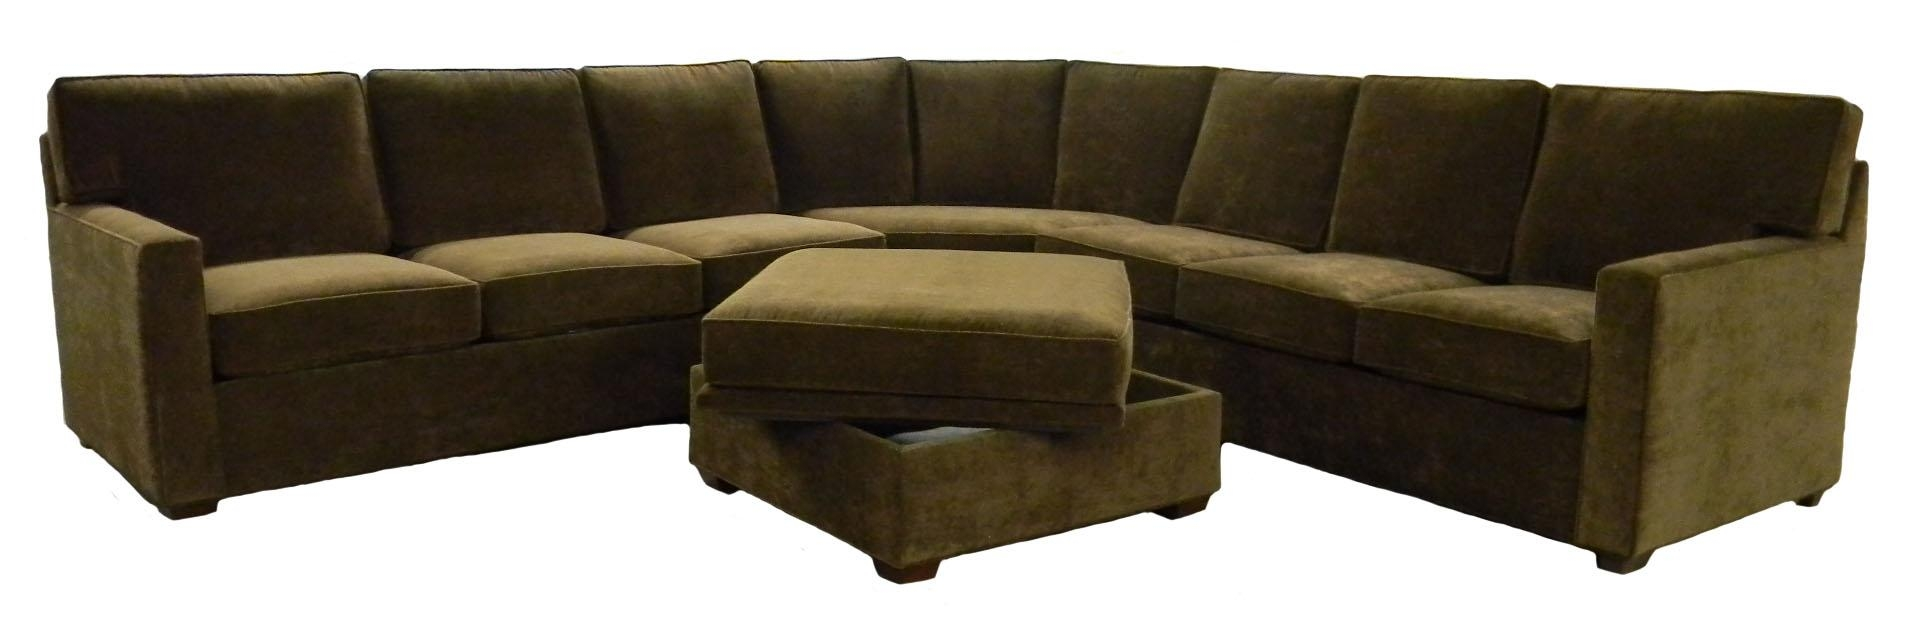 Sofas Center : Excellent Green Sectional Sofa Photos Inspirations Throughout Green Sectional Sofa With Chaise (Image 12 of 15)